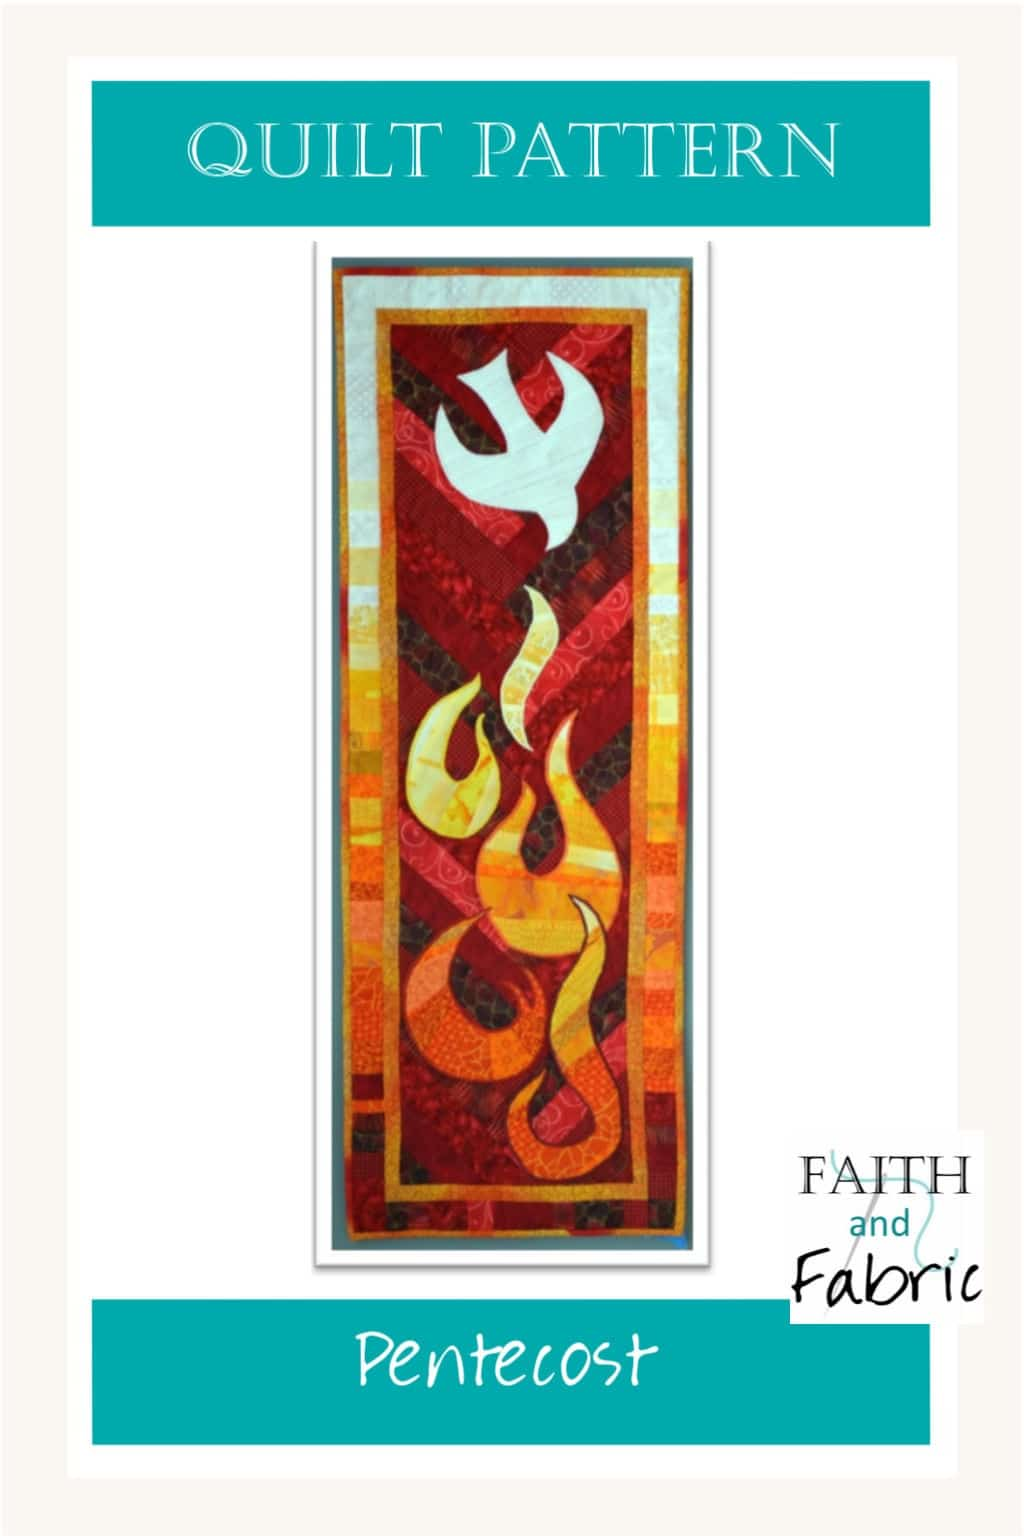 Celebrate the fire of Pentecost with this bold quilt pattern! The dove dives into the flames in the radiating banner, making it the perfect quilt for hanging in your church for Pentecost. Designed by Faith and Fabric.